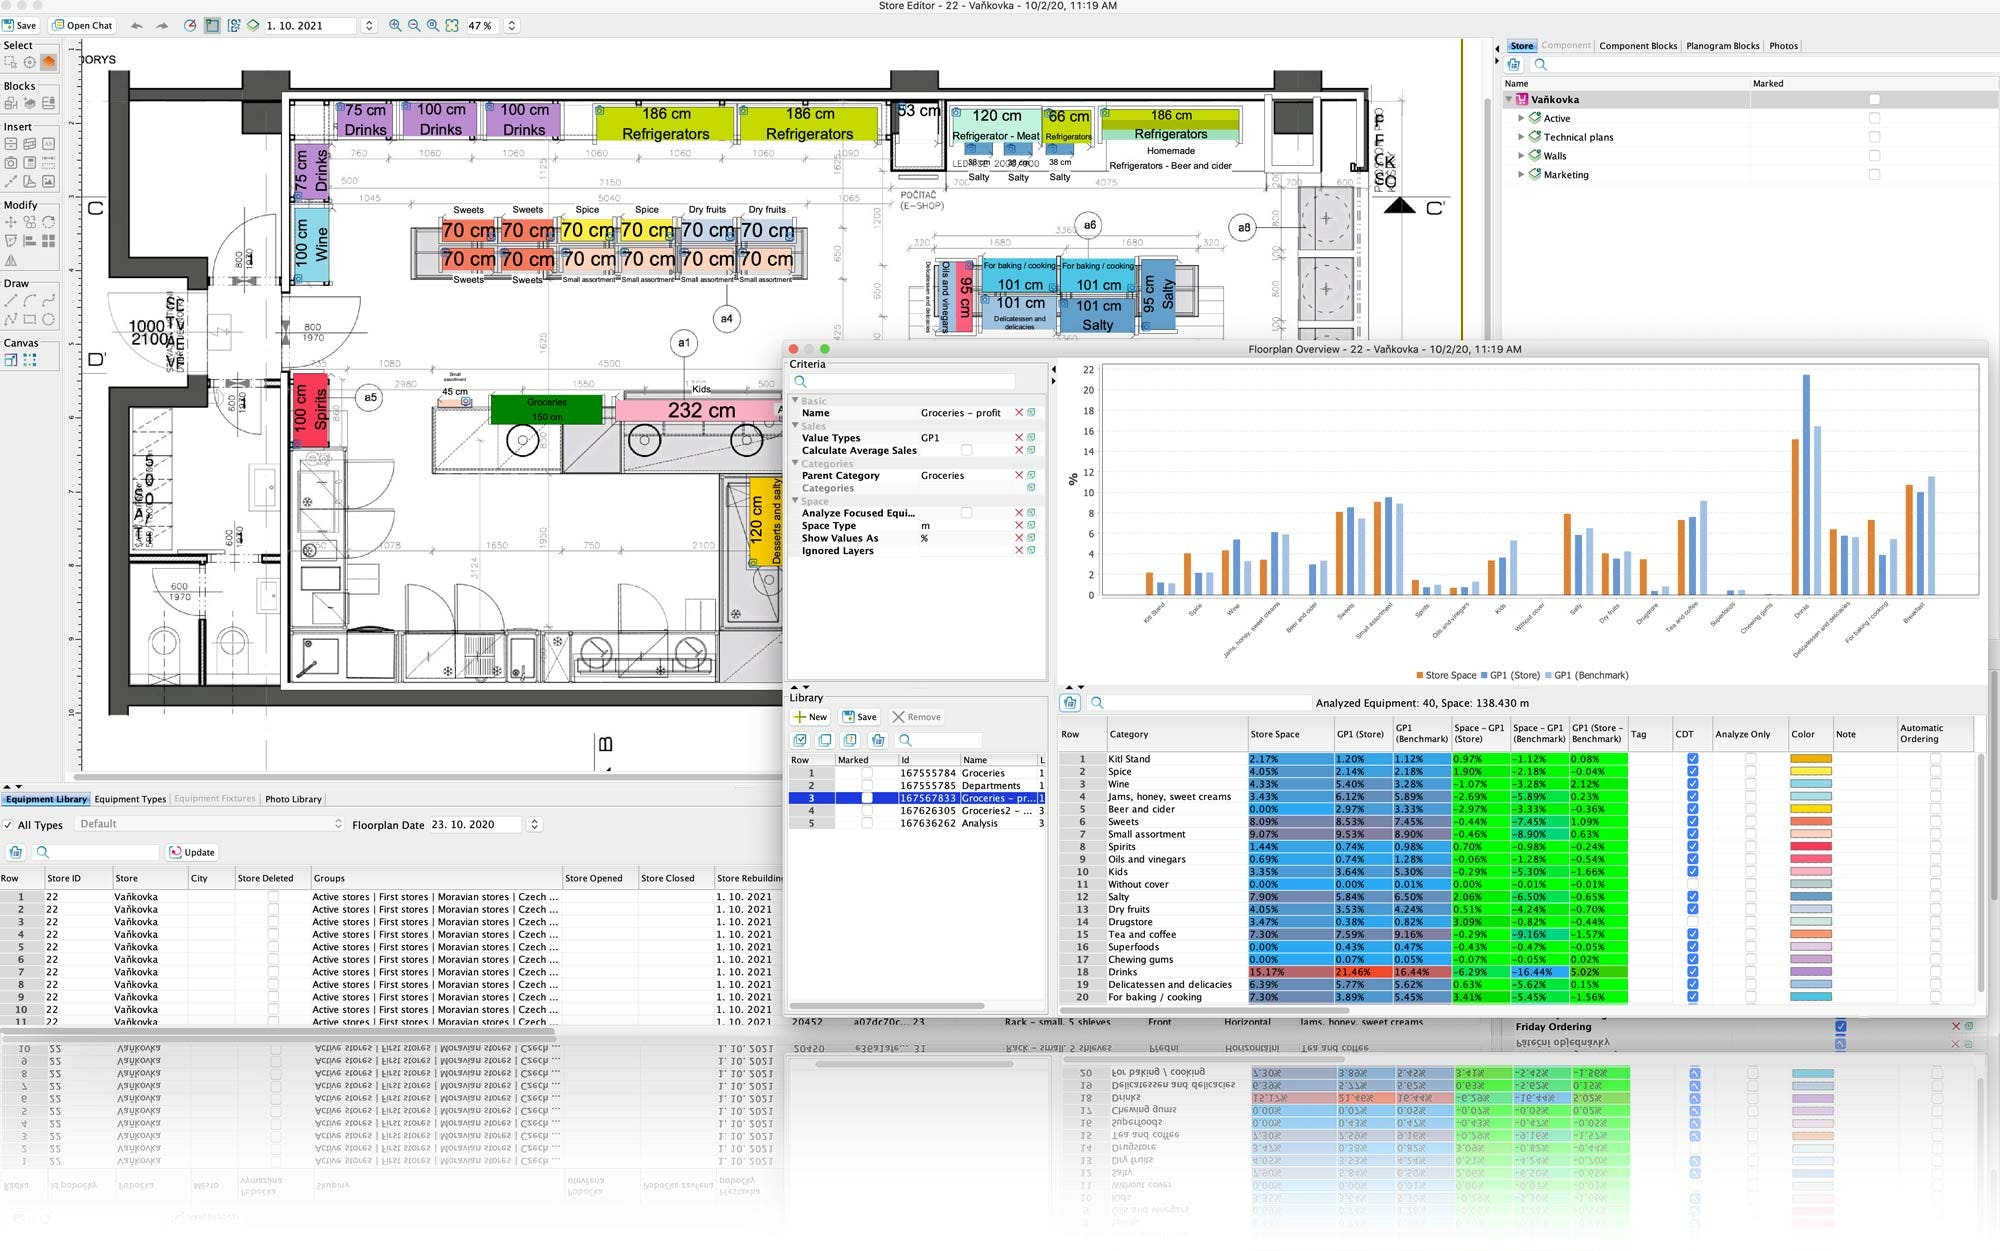 Quant Software - Space to Sales Analyze